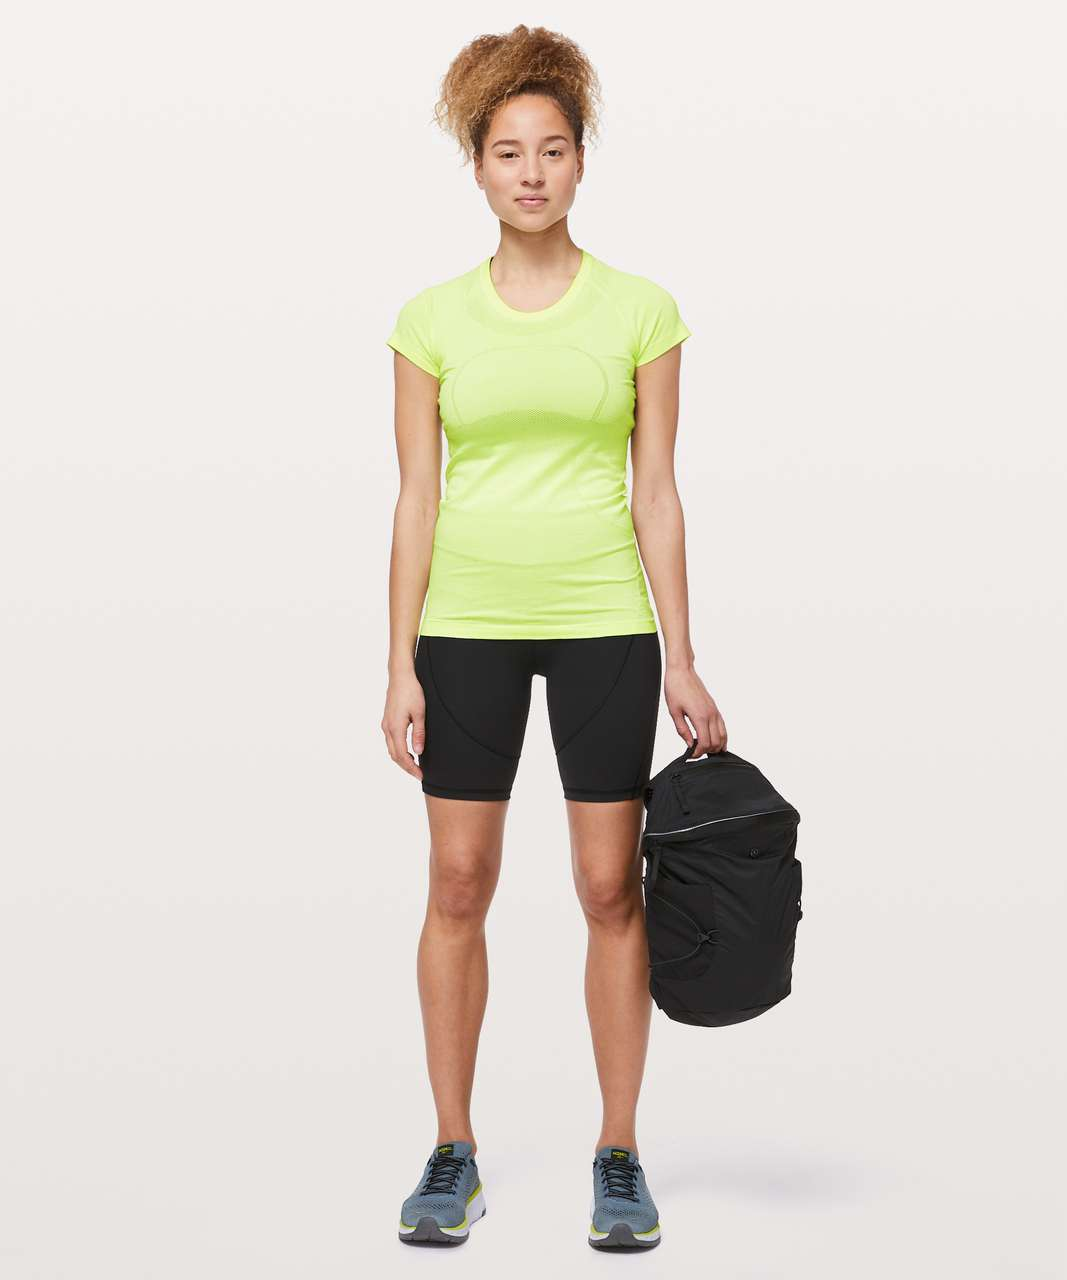 Lululemon Swiftly Tech Short Sleeve Crew - Florid Flash / White